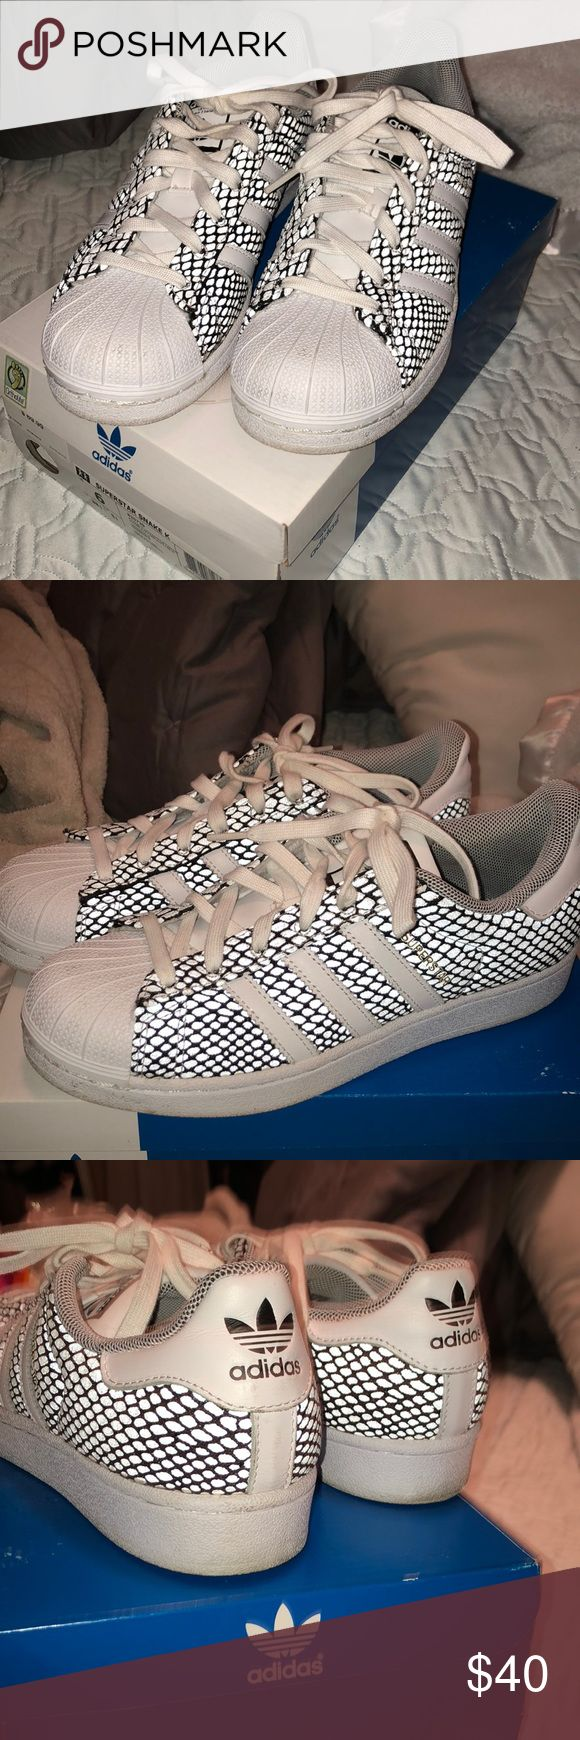 Adidas super star size 6 Worn and few time buts in great condition Adidas Shoes Athletic Shoes